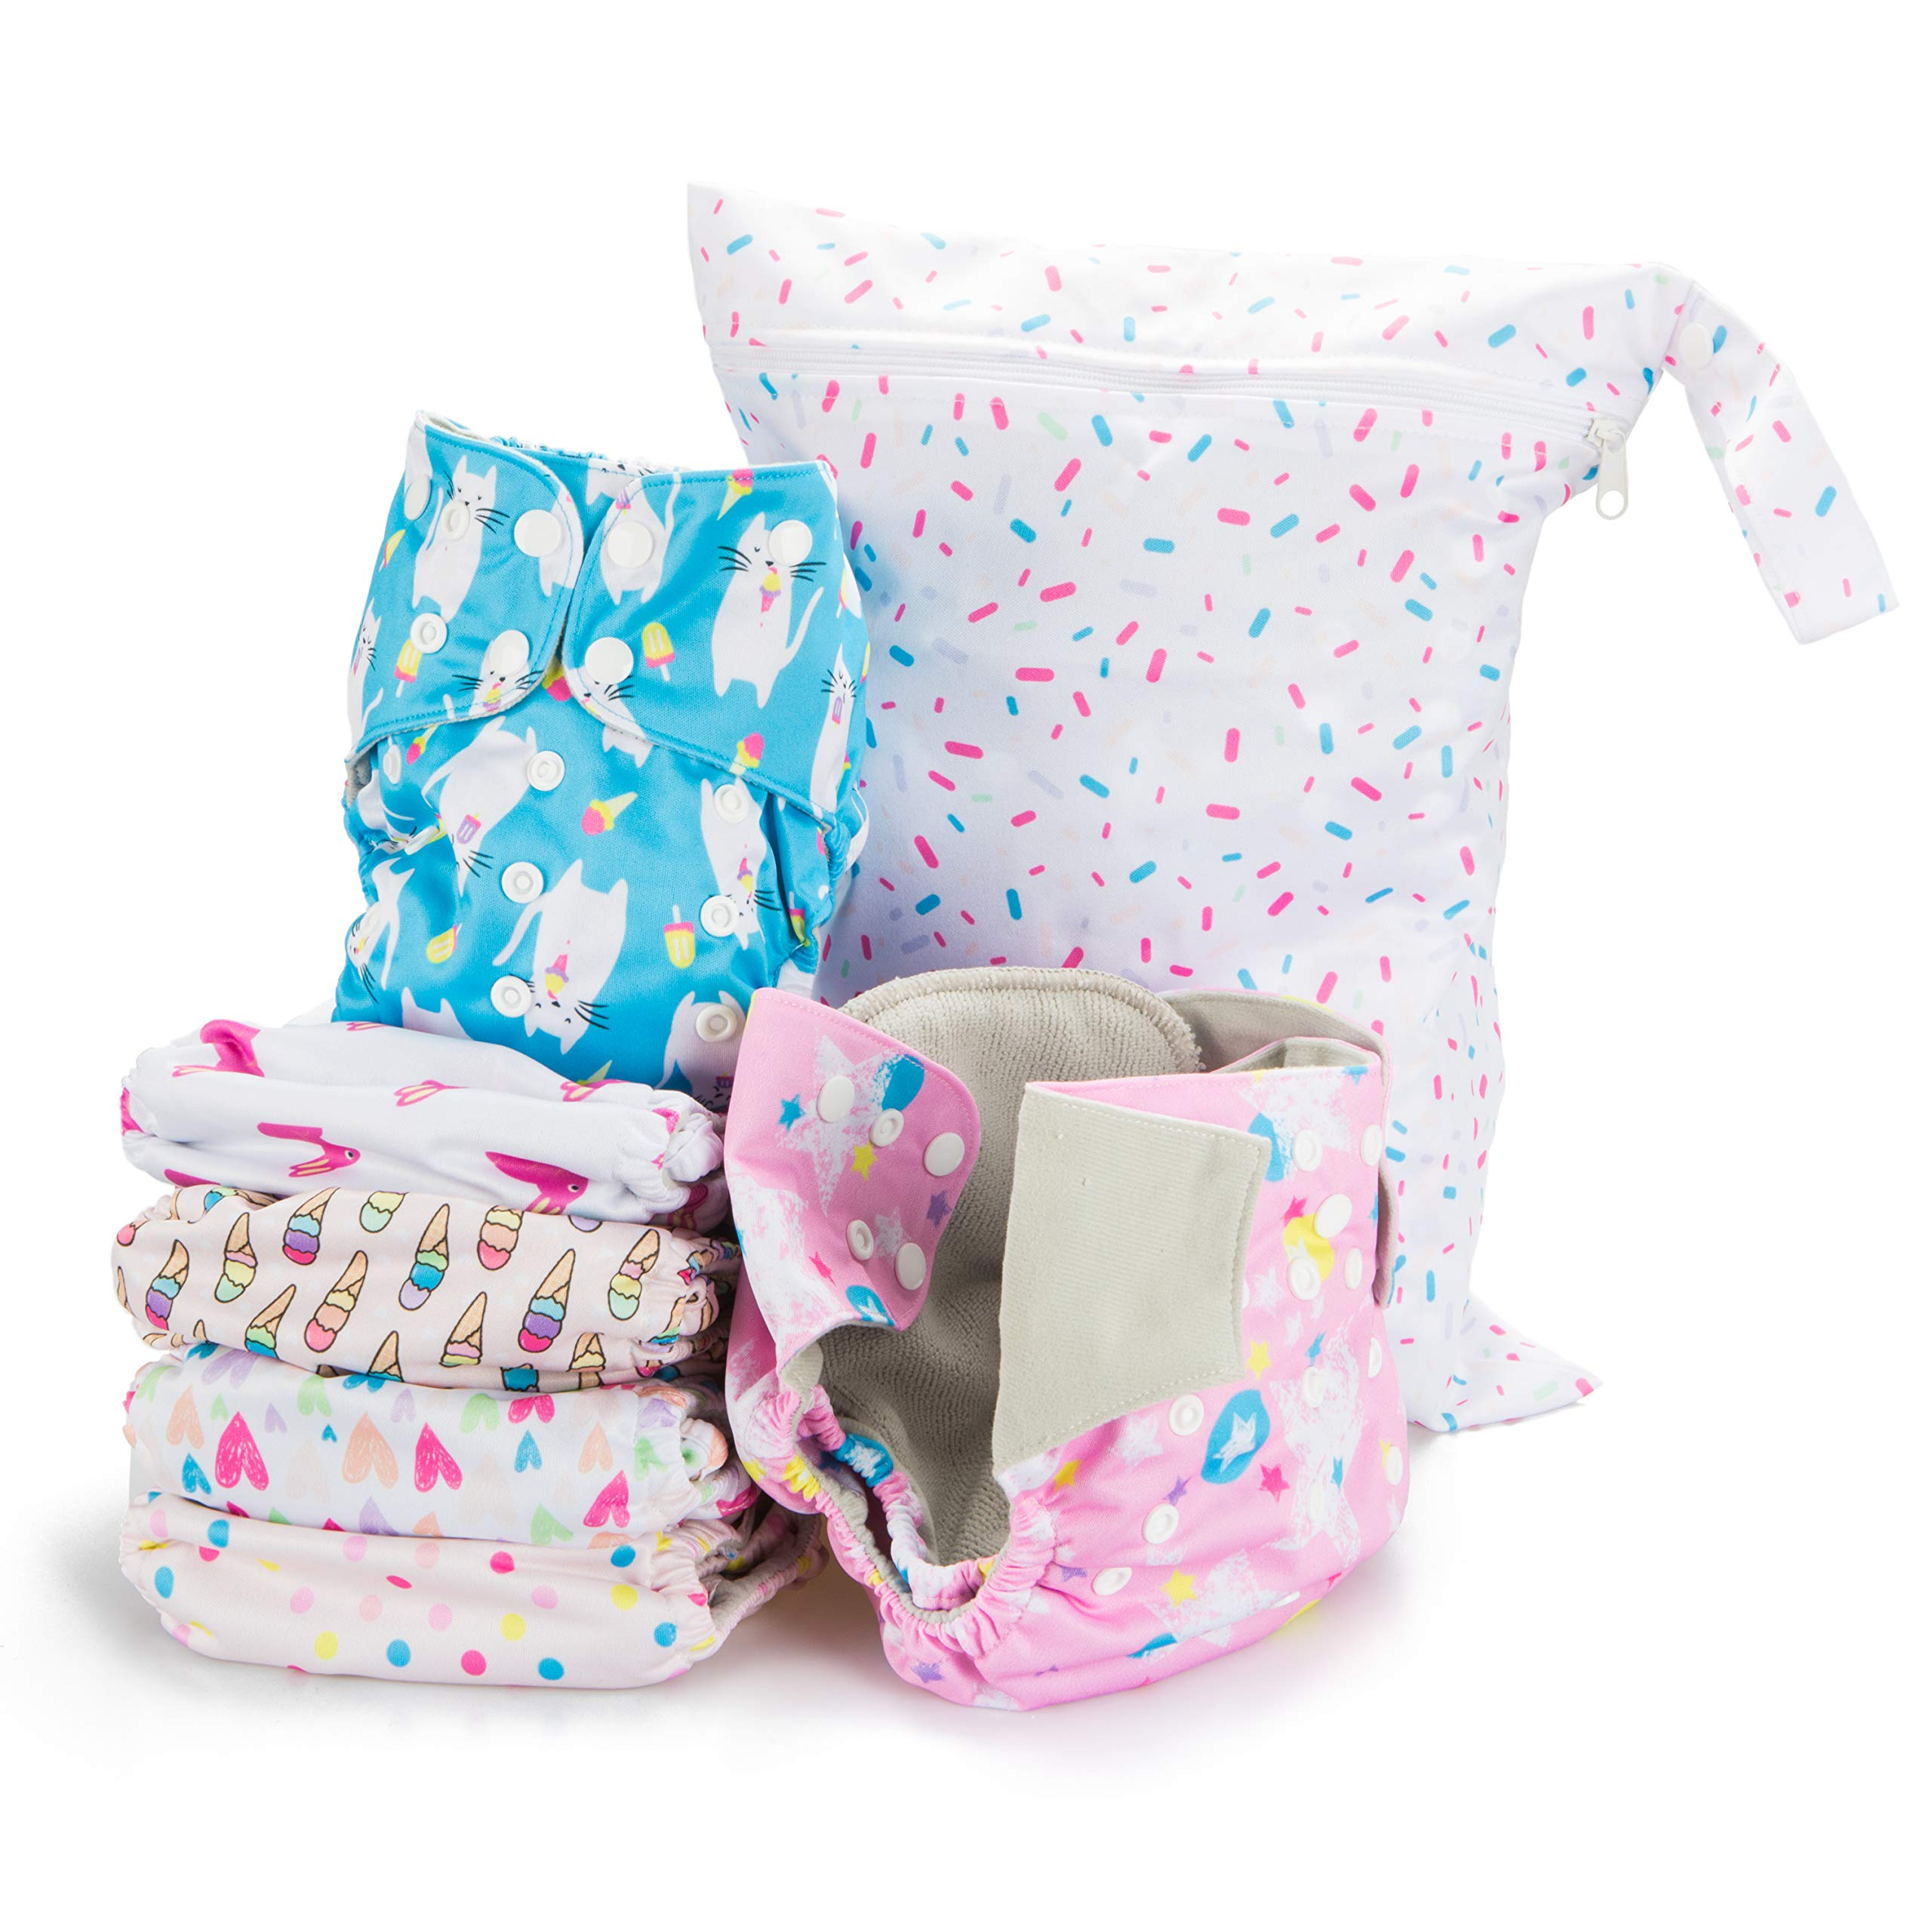 Simple Being Reusable Cloth Diapers- Double Gusset-6 Pack Pocket Adjustable Size-Waterproof Cover-6 Inserts-Wet Bag (Sweet)